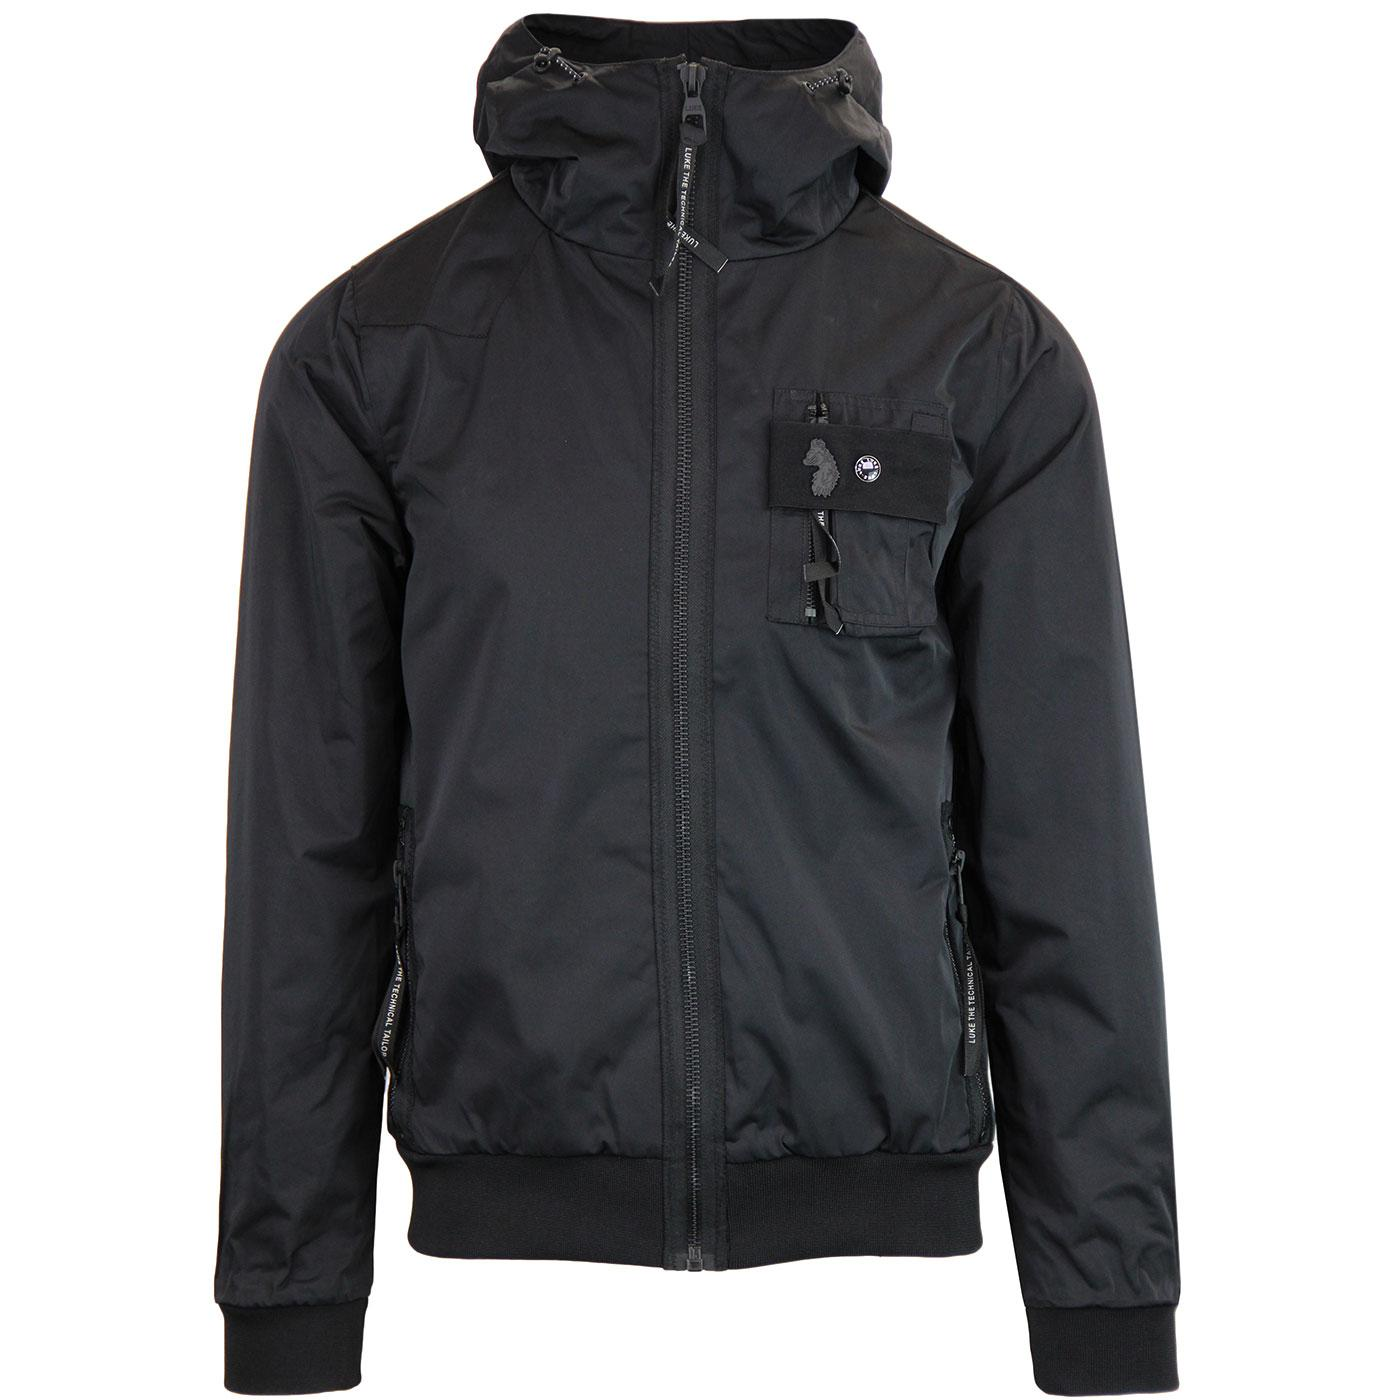 Shakermaker LUKE 1977 Men's Indie Hooded Jacket